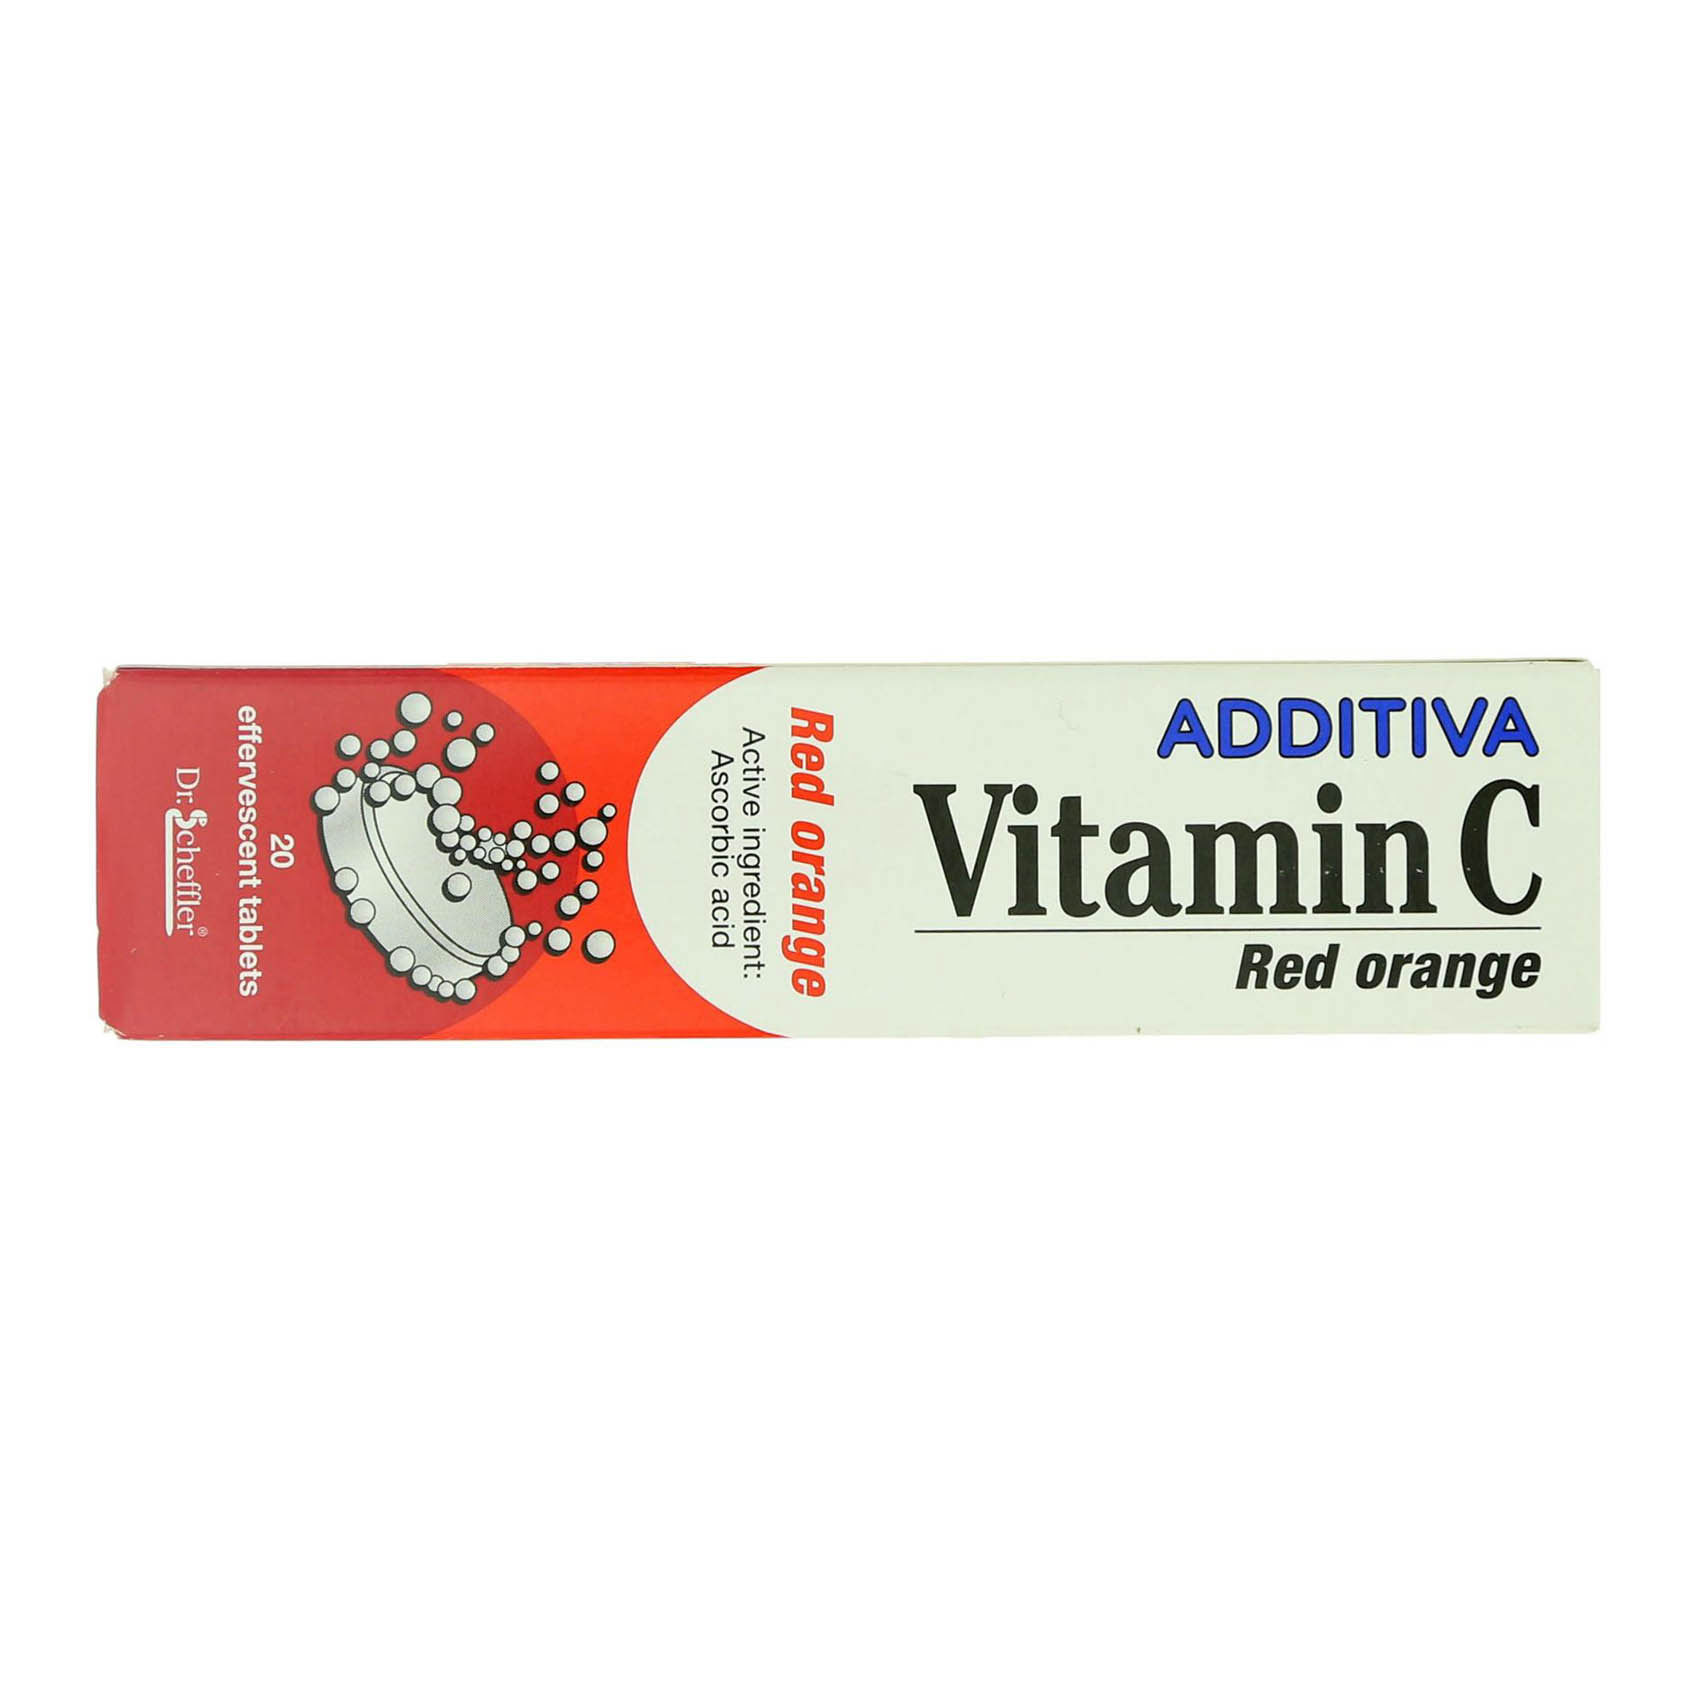 ADDITIVA VITAMIN C RED ORANGE 1000M